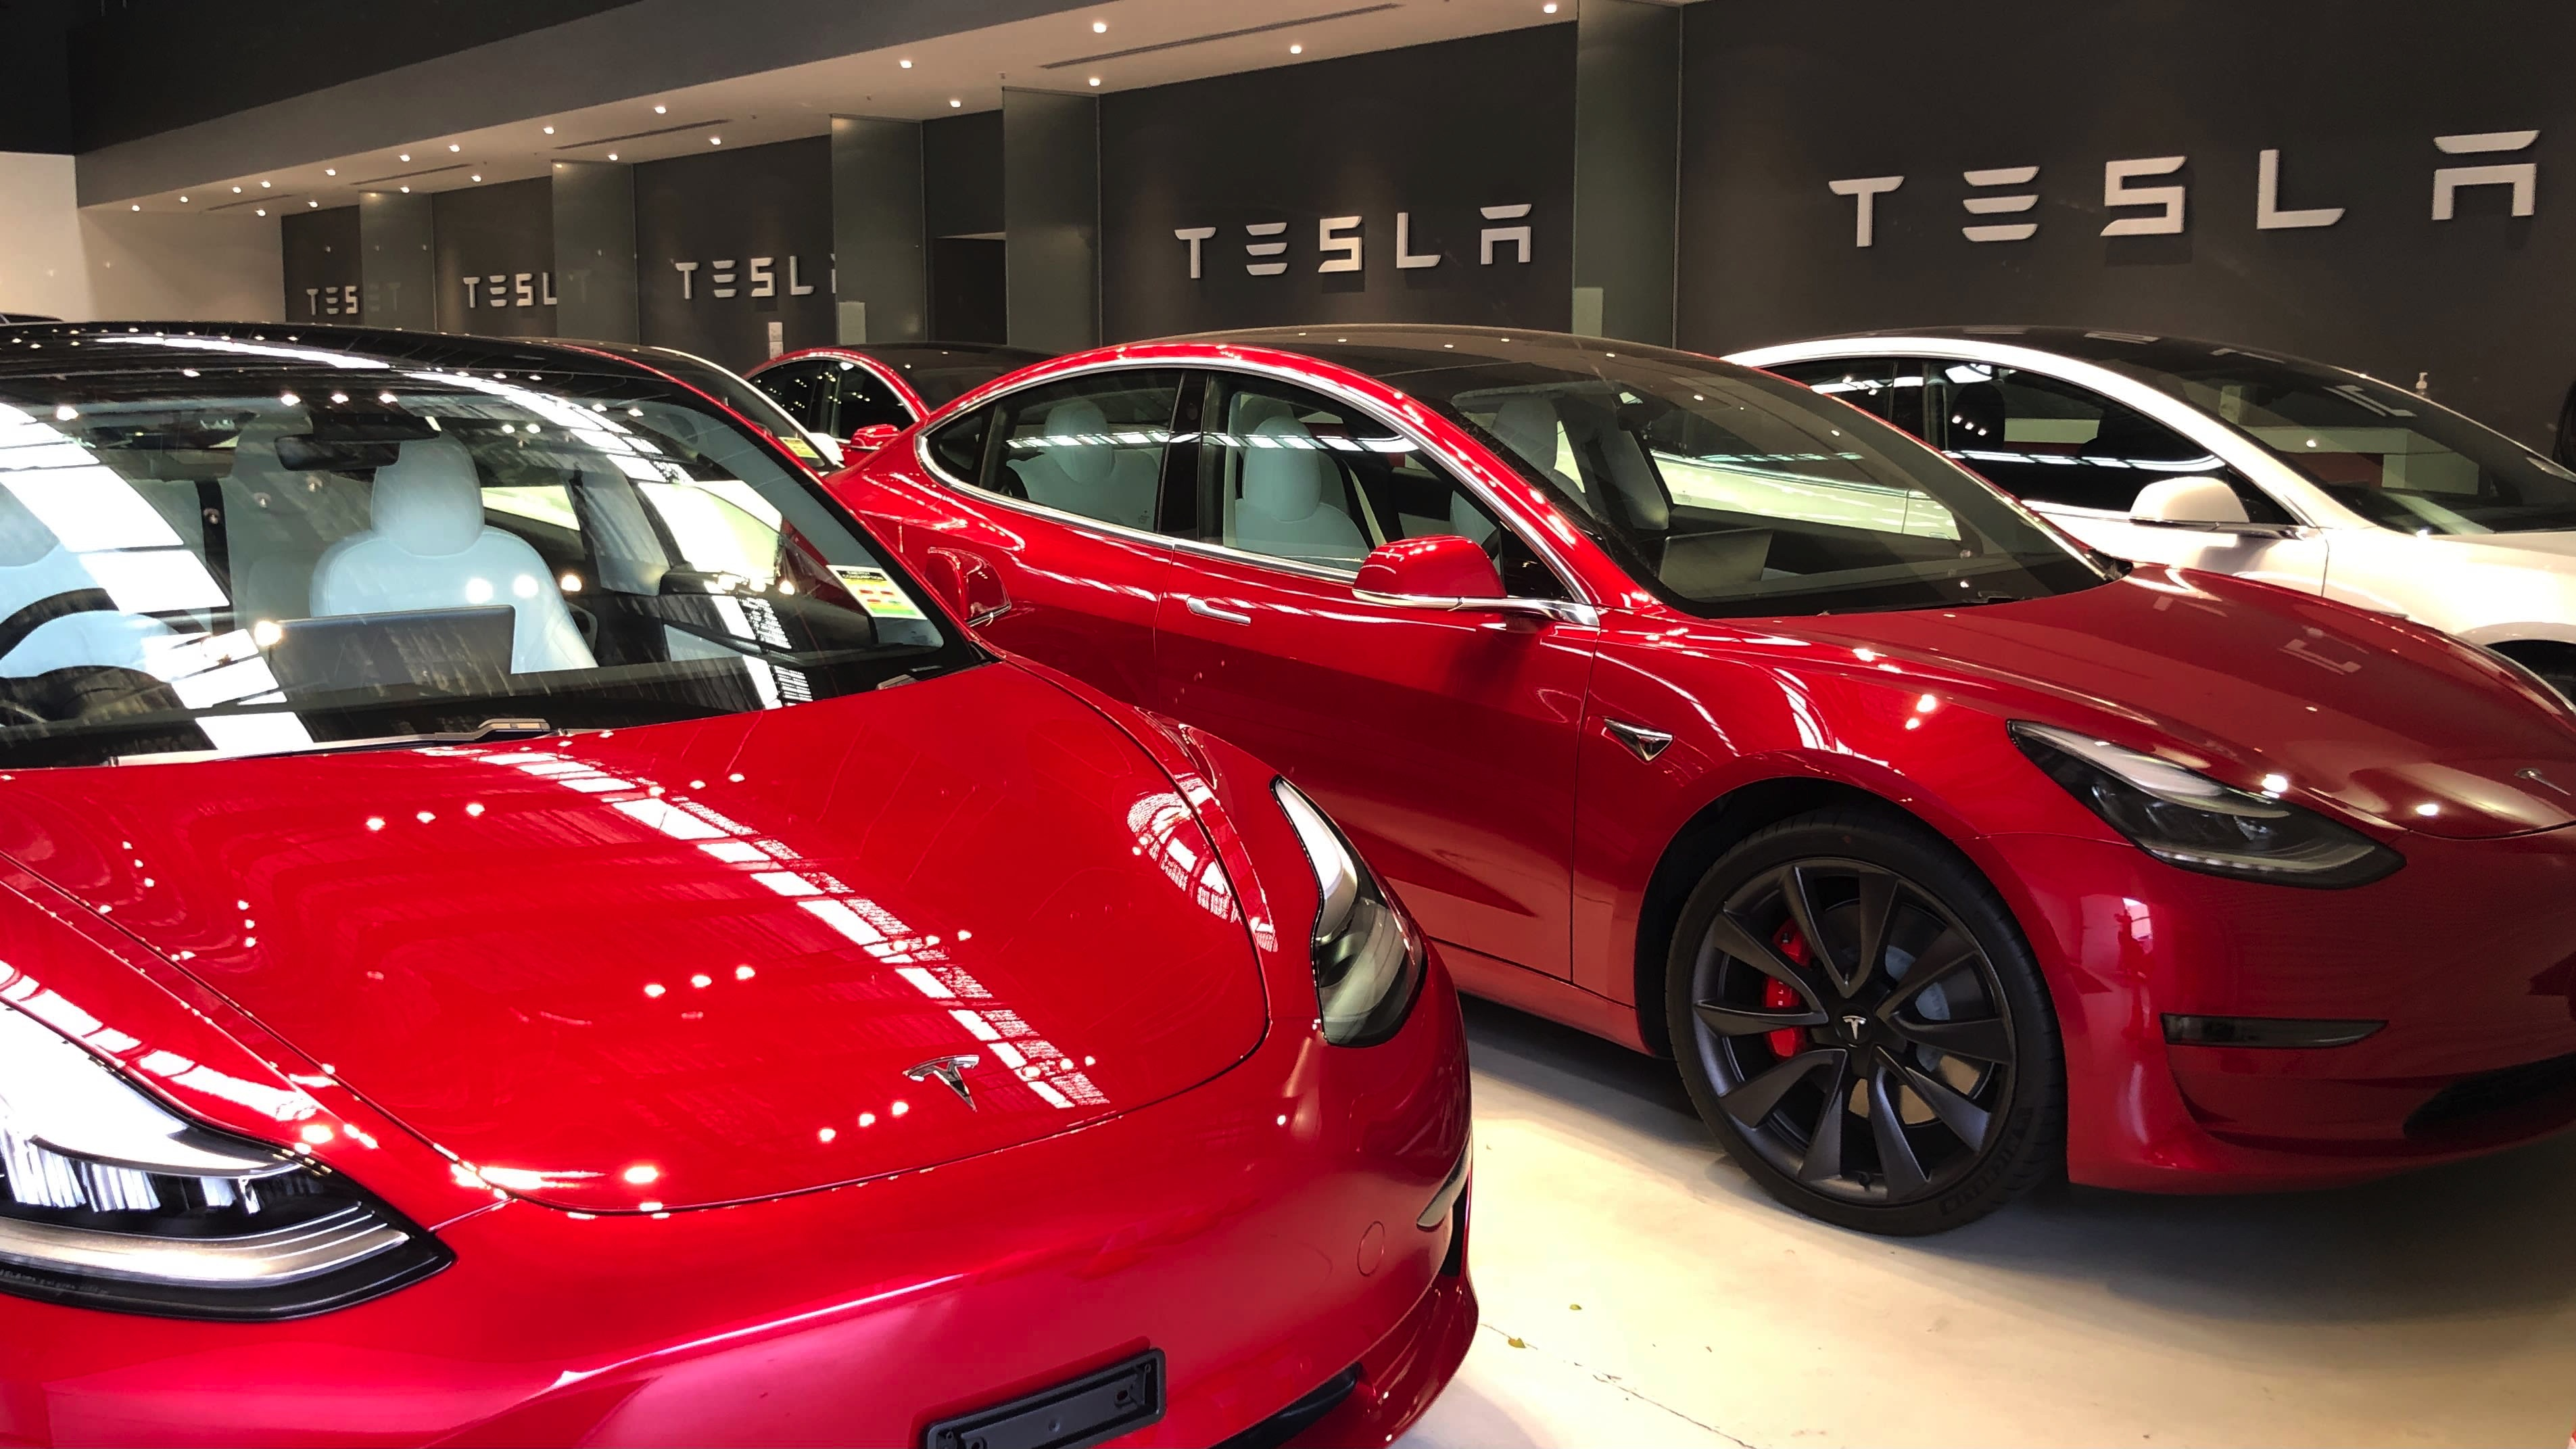 Tesla reaches (nearly) half a million sales in 2020